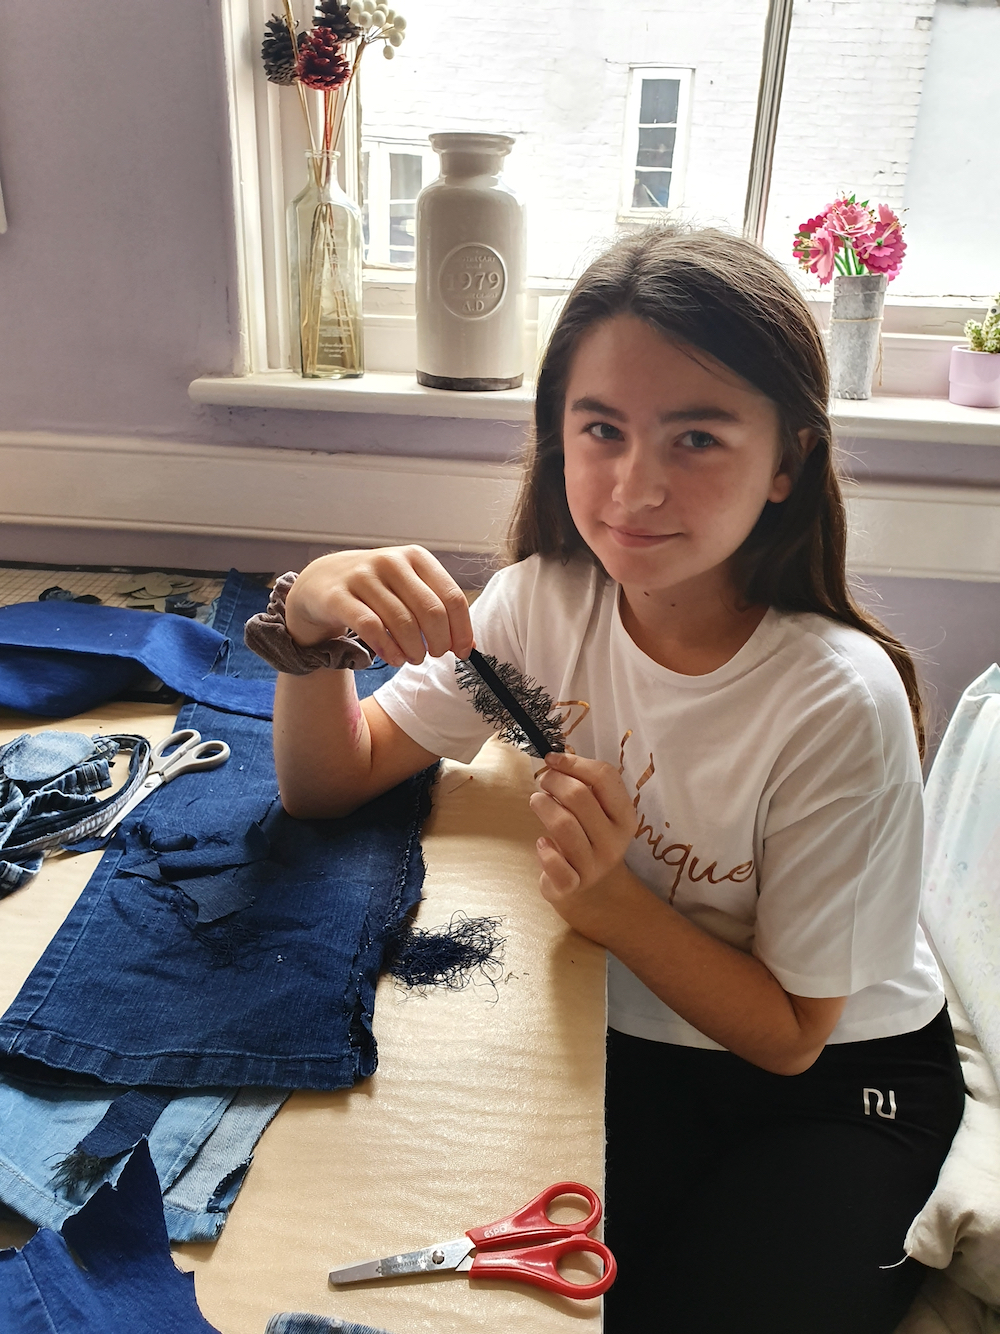 Making feathers and tassels for Psyche's dress with Natalie Bailey for Inspire - Fitzwilliam Museum, Cambridge